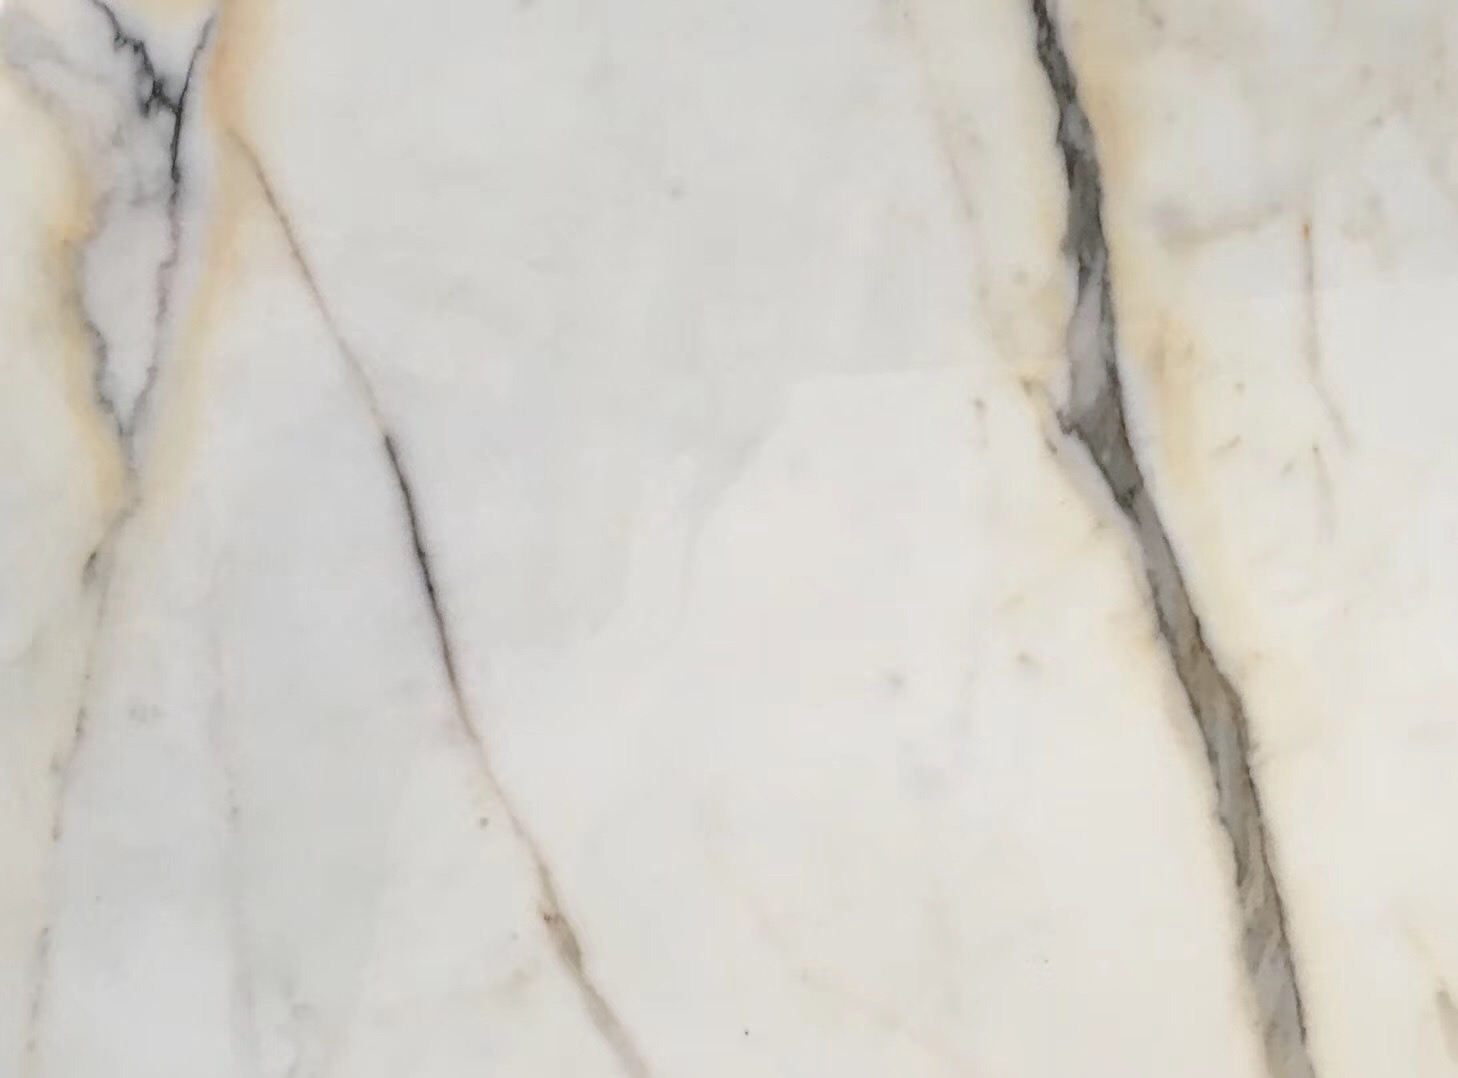 Calacatta gold marble tile 18x18,gold carrera marble,calacatta gold polished,calacatta gold marble tile price,calacatta gold marble tile 3x6,cost of calacatta gold marble